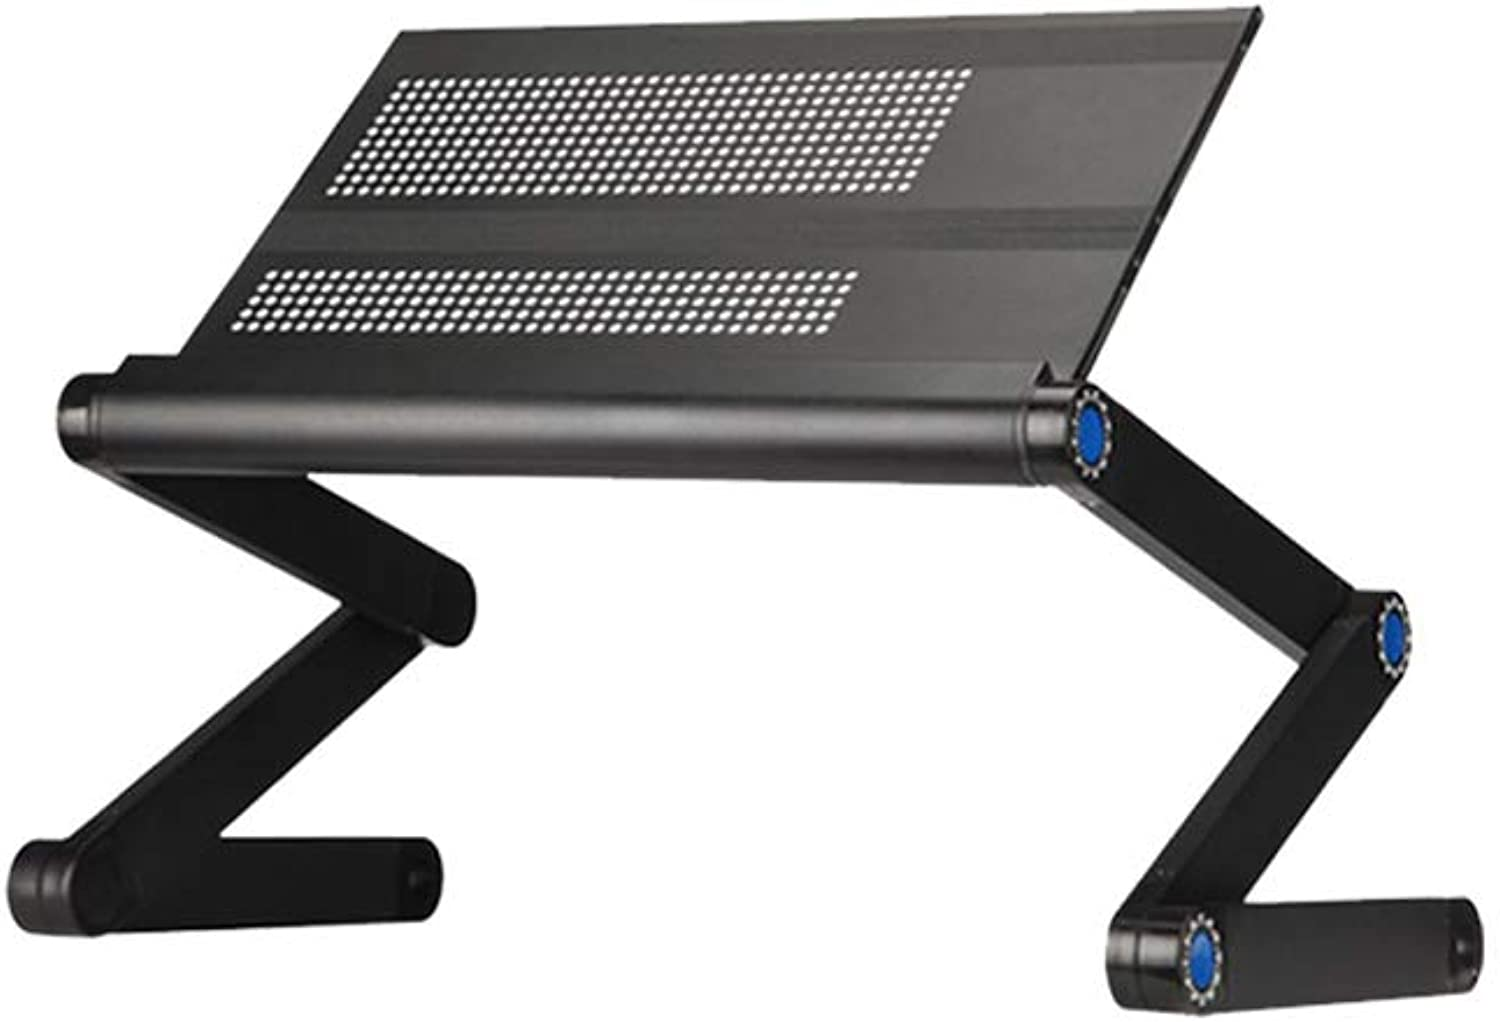 Laptop Table Stand Adjustable Riser  Portable Mouse Pad Fully Ergonomic